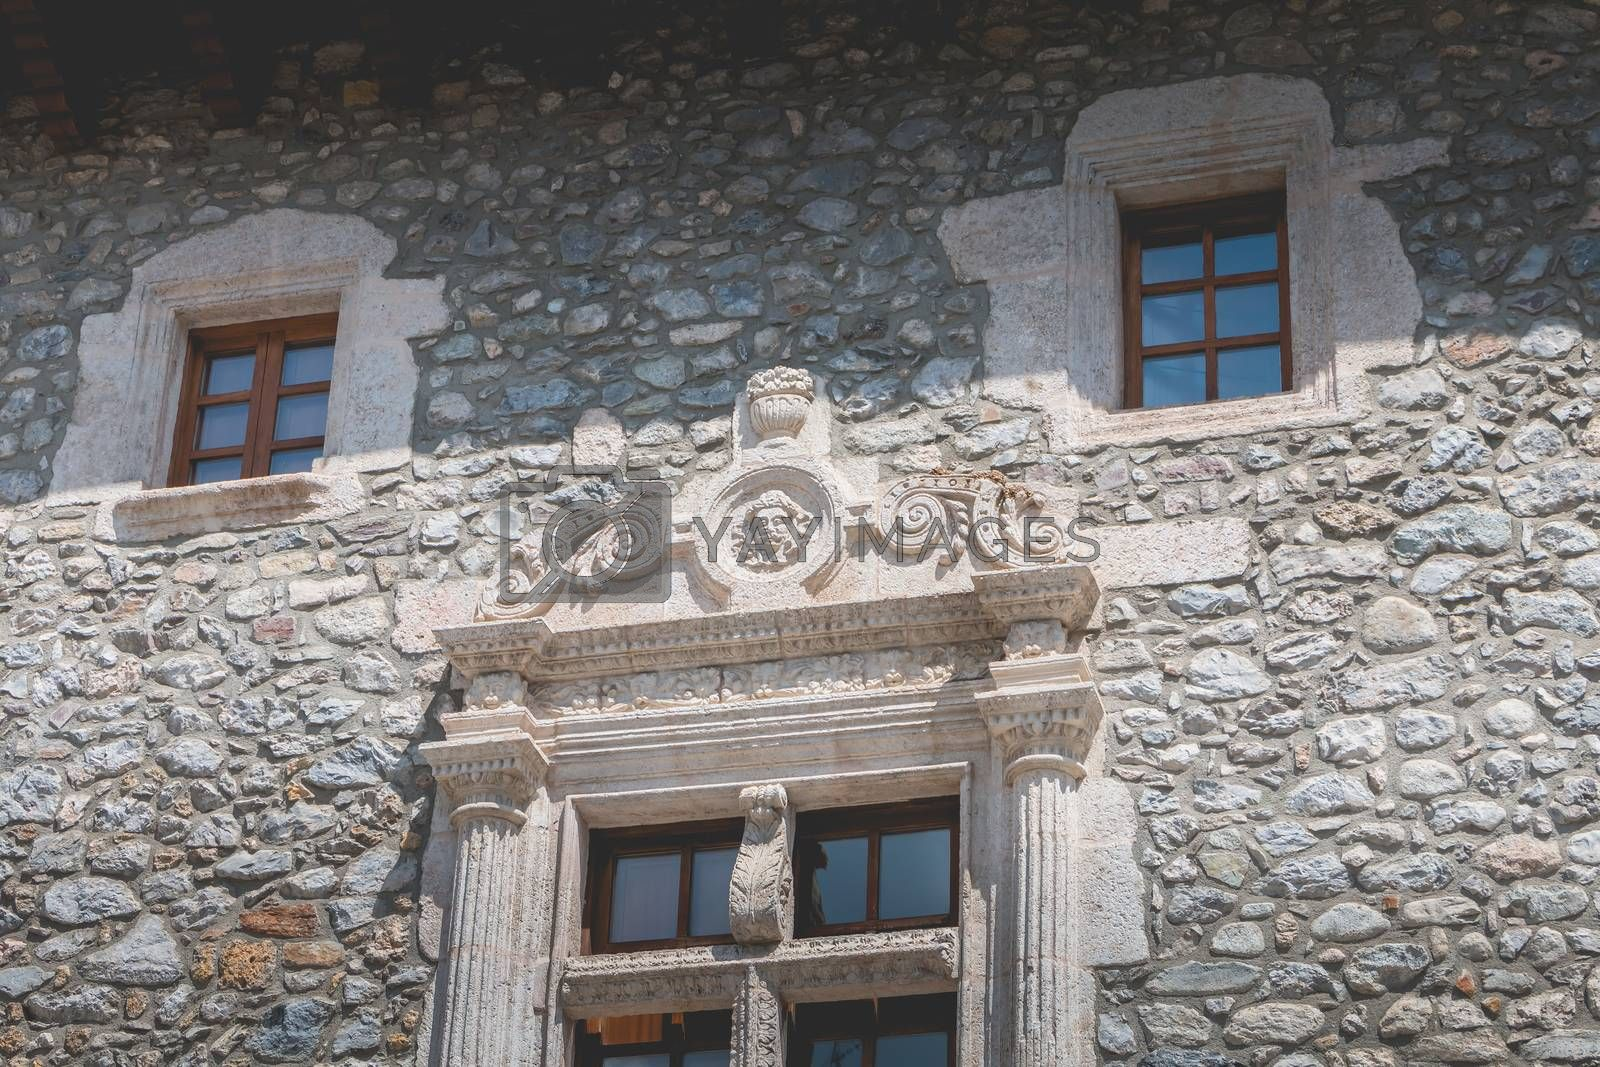 bielsa, spain - August 21, 2018: architectural detail of the town hall in the city center on a summer day